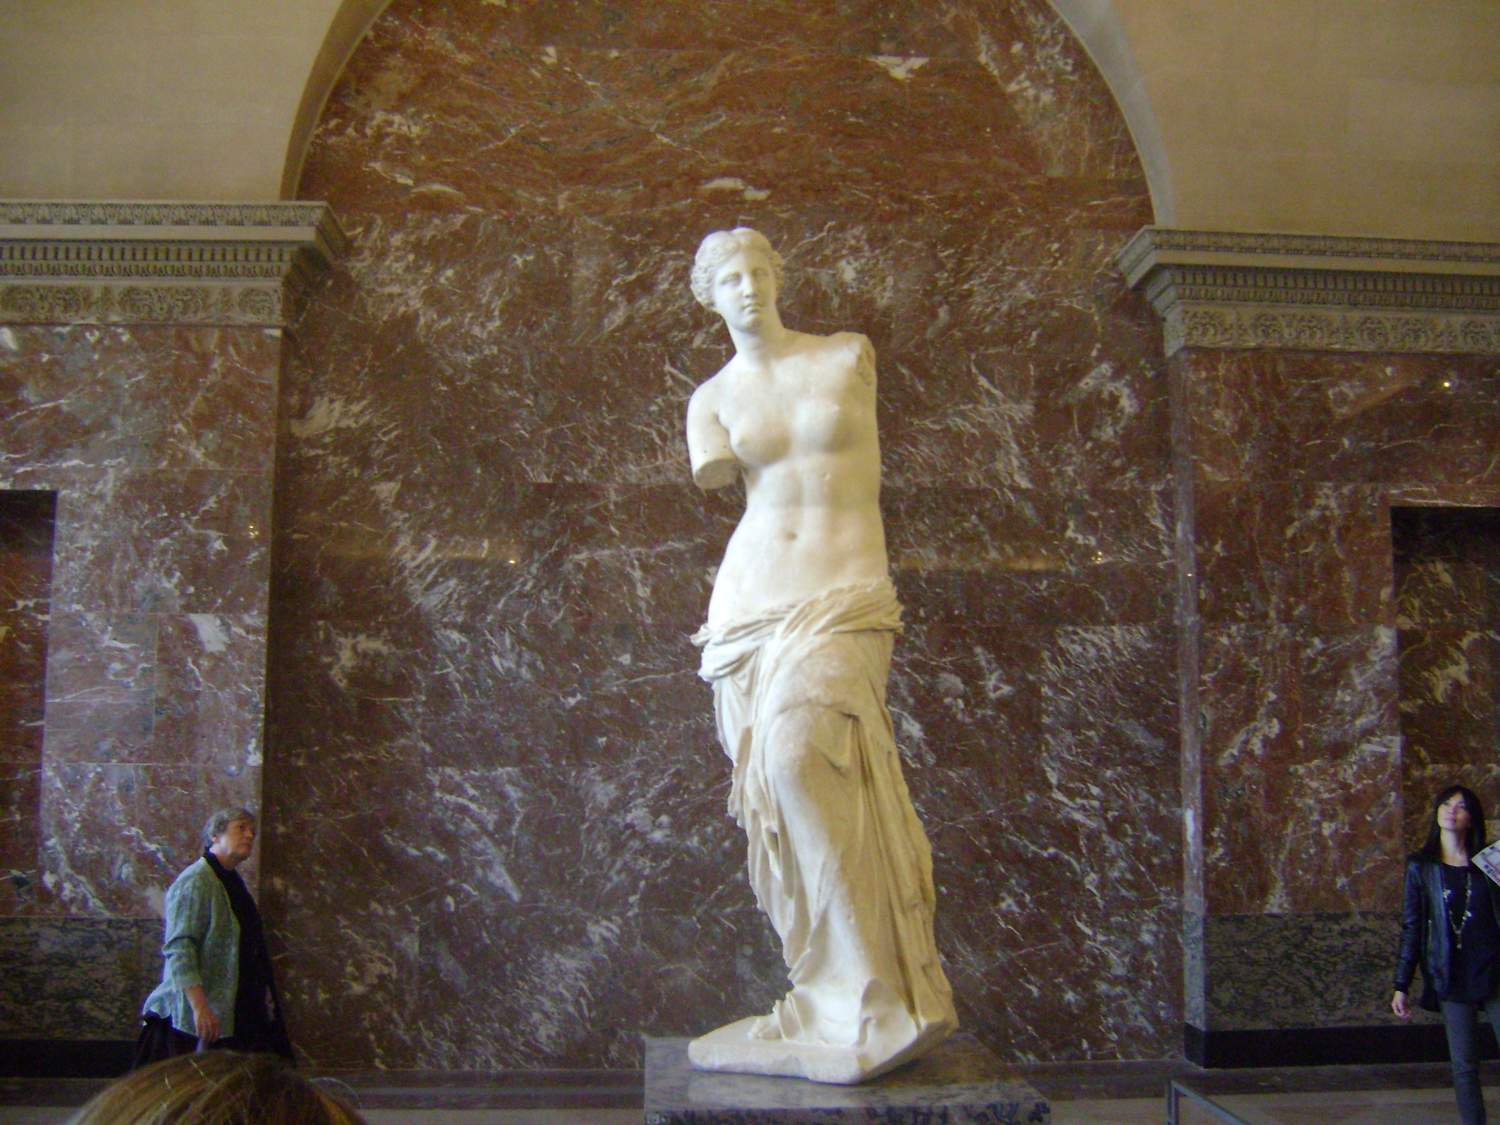 Venus de Milo's sculpture in the Louvre